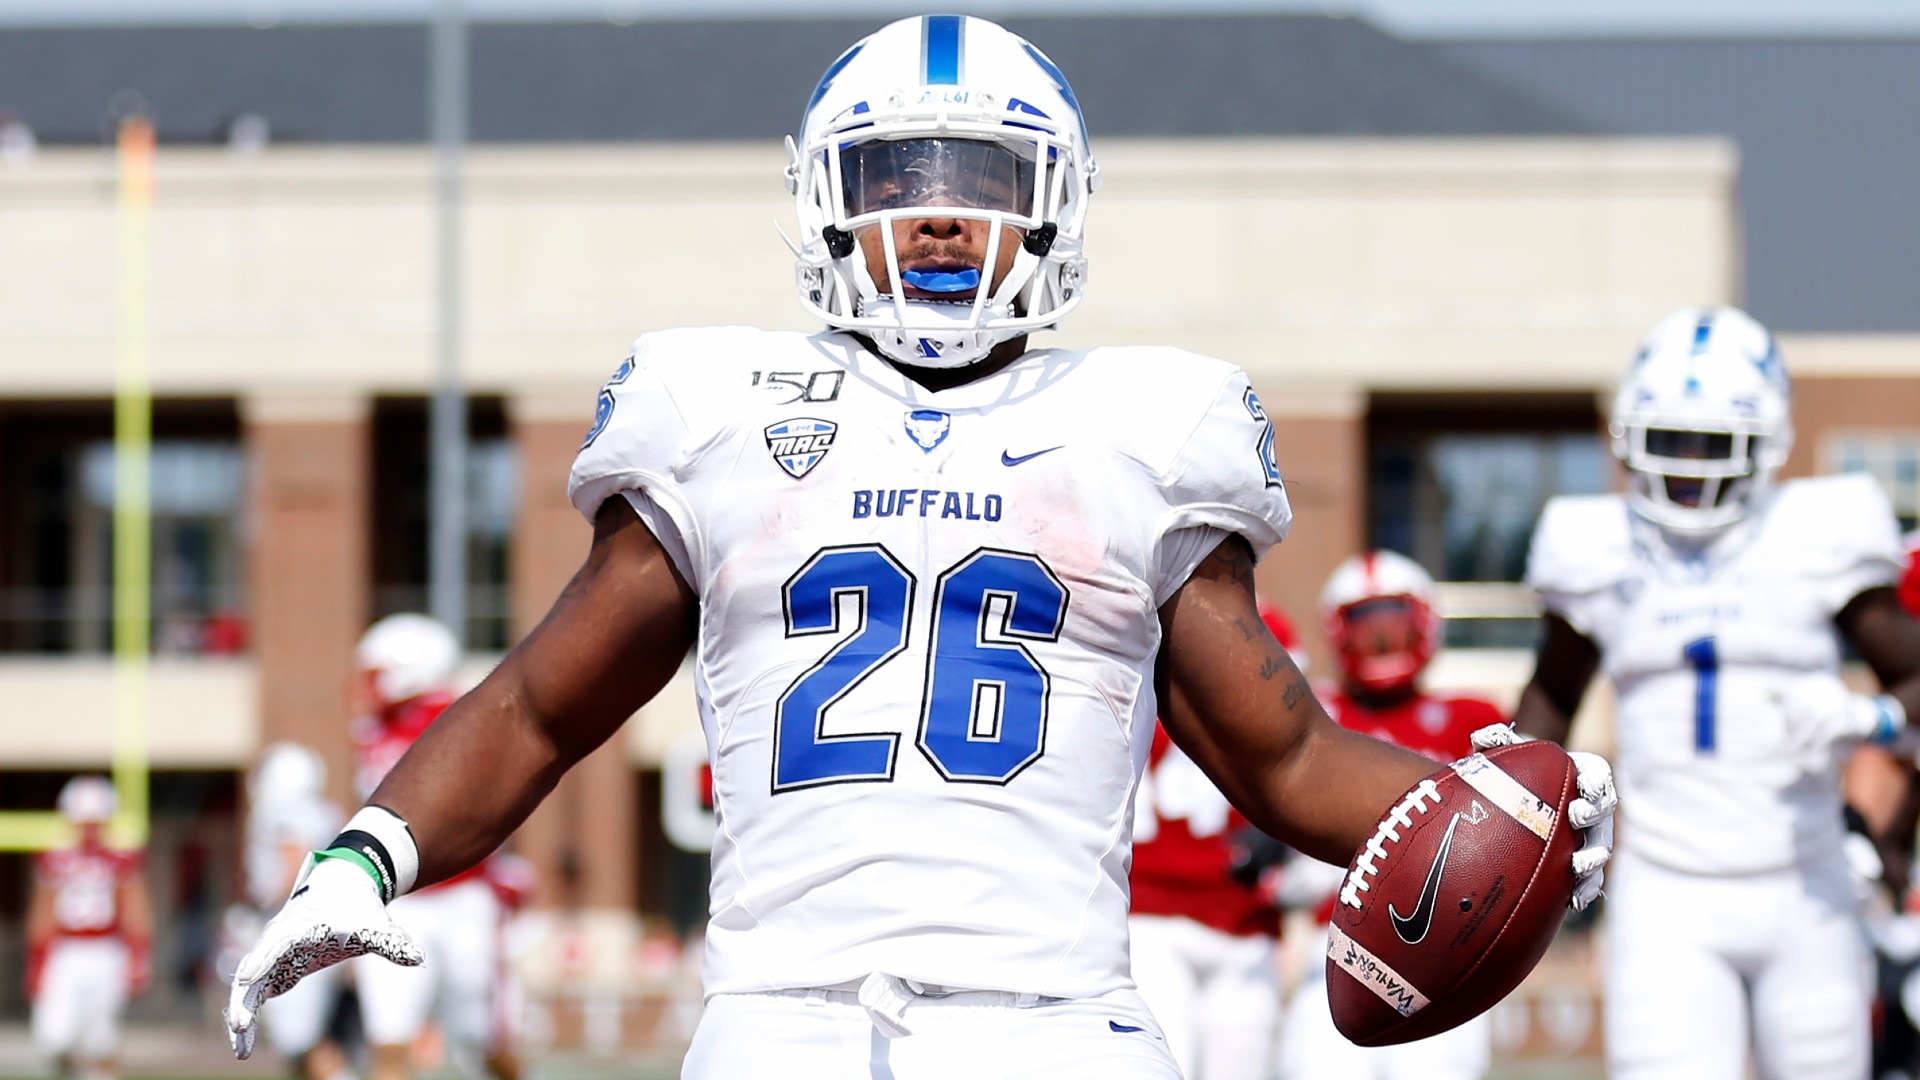 Tuesday MACtion: College Football Betting Odds & Picks for Buffalo vs. Miami, Ohio vs. Akron & More article feature image